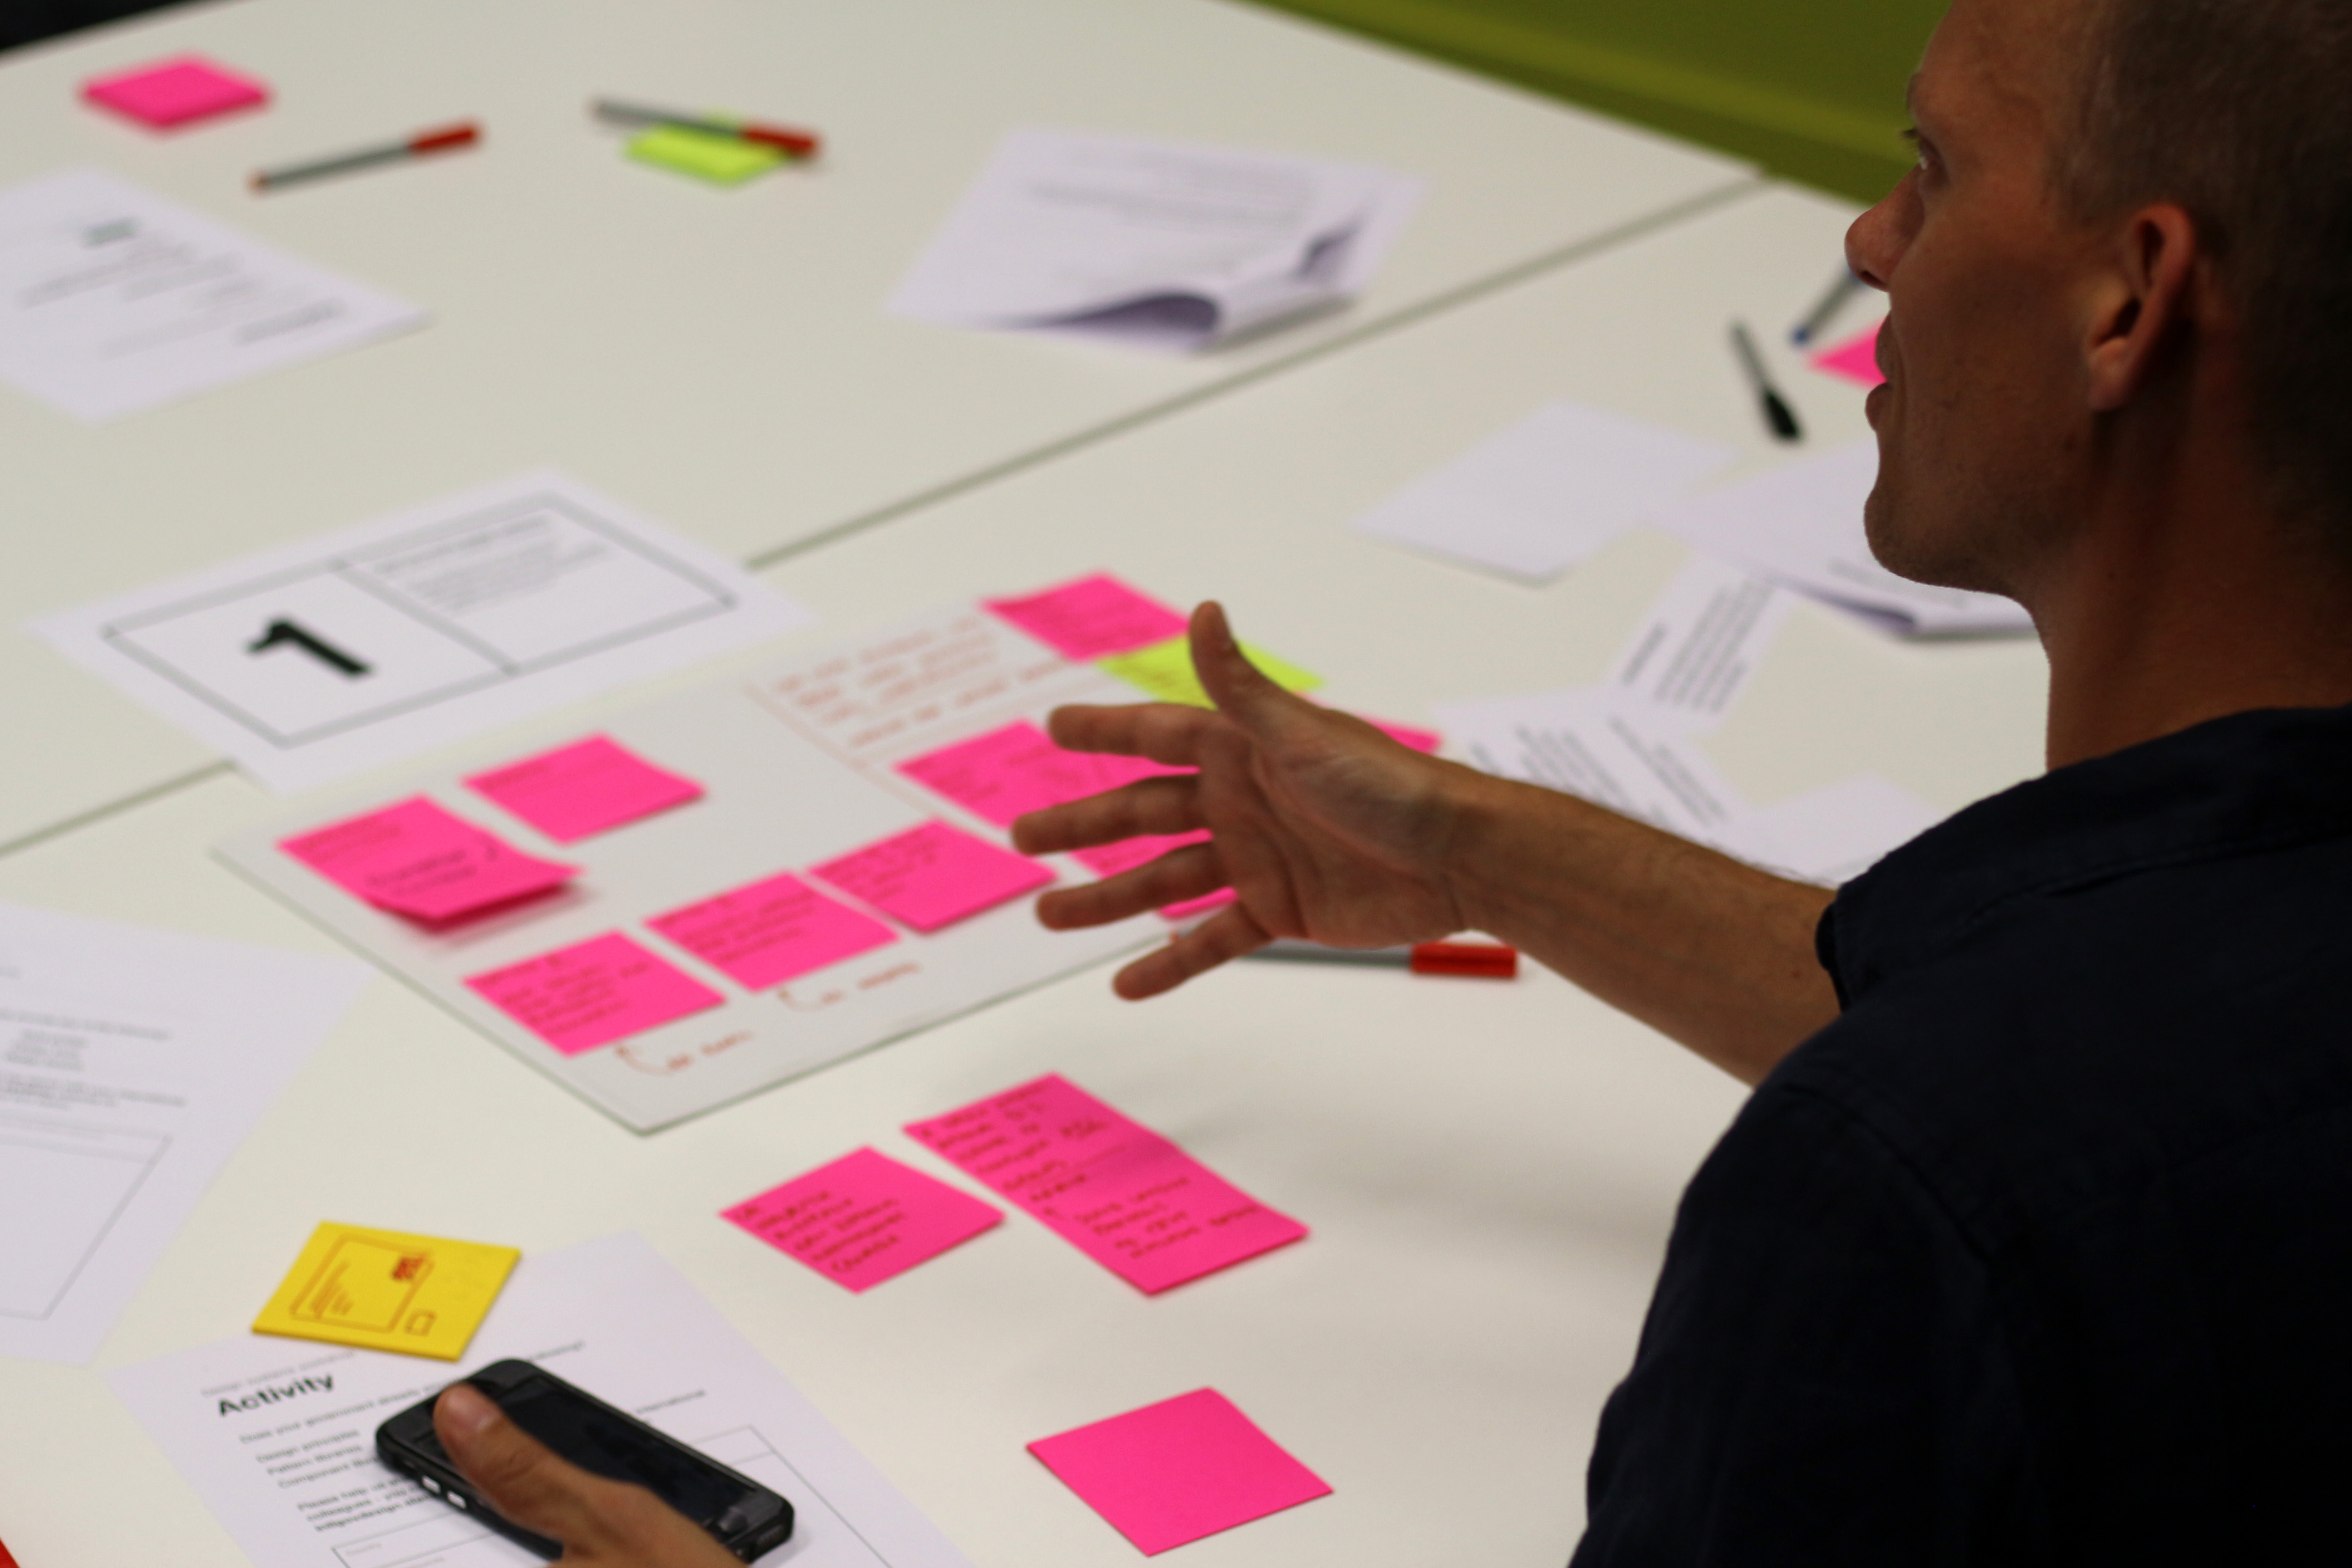 We've talked before about the GOV.UK Design System and how we've worked to make everything it contains accessible, easy to implement and of a high